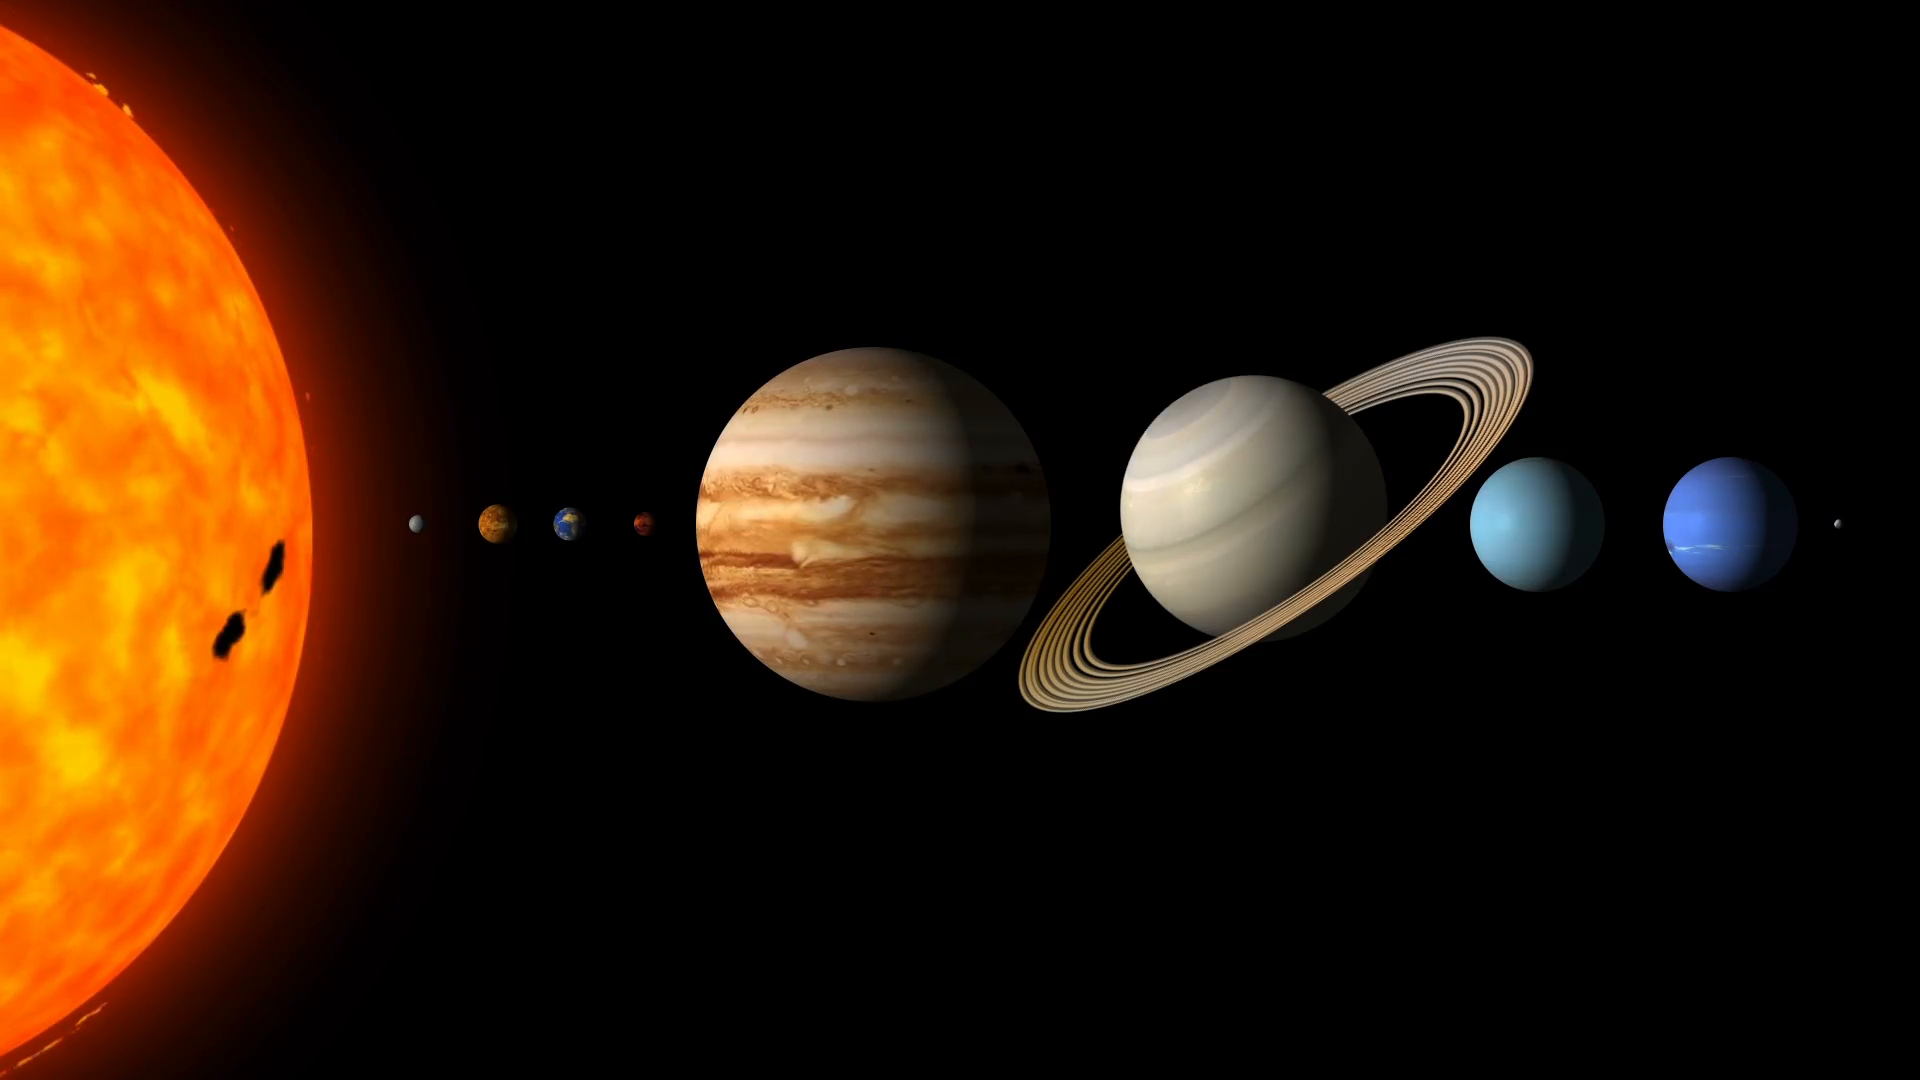 the-planets-of-the-solar-system-by-order_41pxop1ll__F0000.png